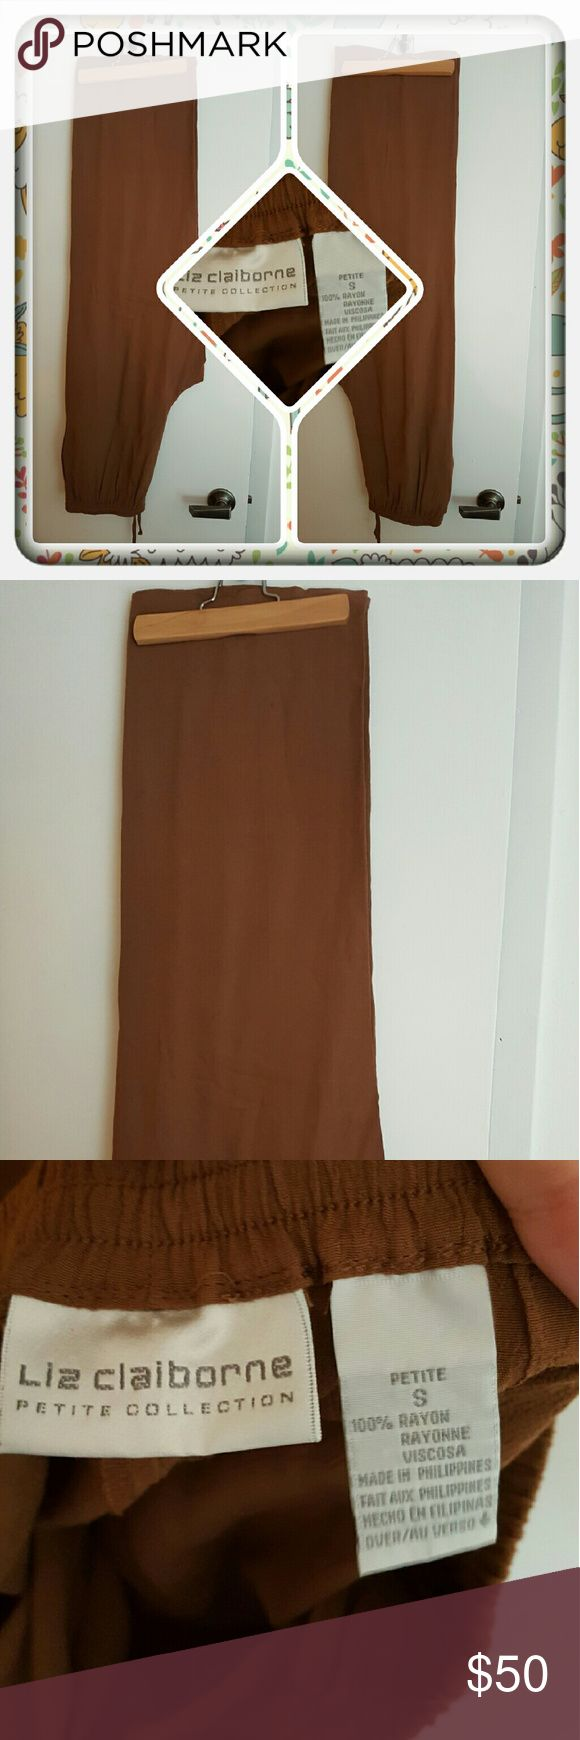 ❤ Woman's Brown Pants Size Small ❤ Woman's Brown Pants By Liz Claiborne Petite Collection Size Is Small Petite. These Are In Great Condition. I'm Selling For A Friend 🚫 PAYPAL 🚫 TRADES 🚫 LOWBALLING THANK YOU ❤ Liz Claiborne Pants Straight Leg